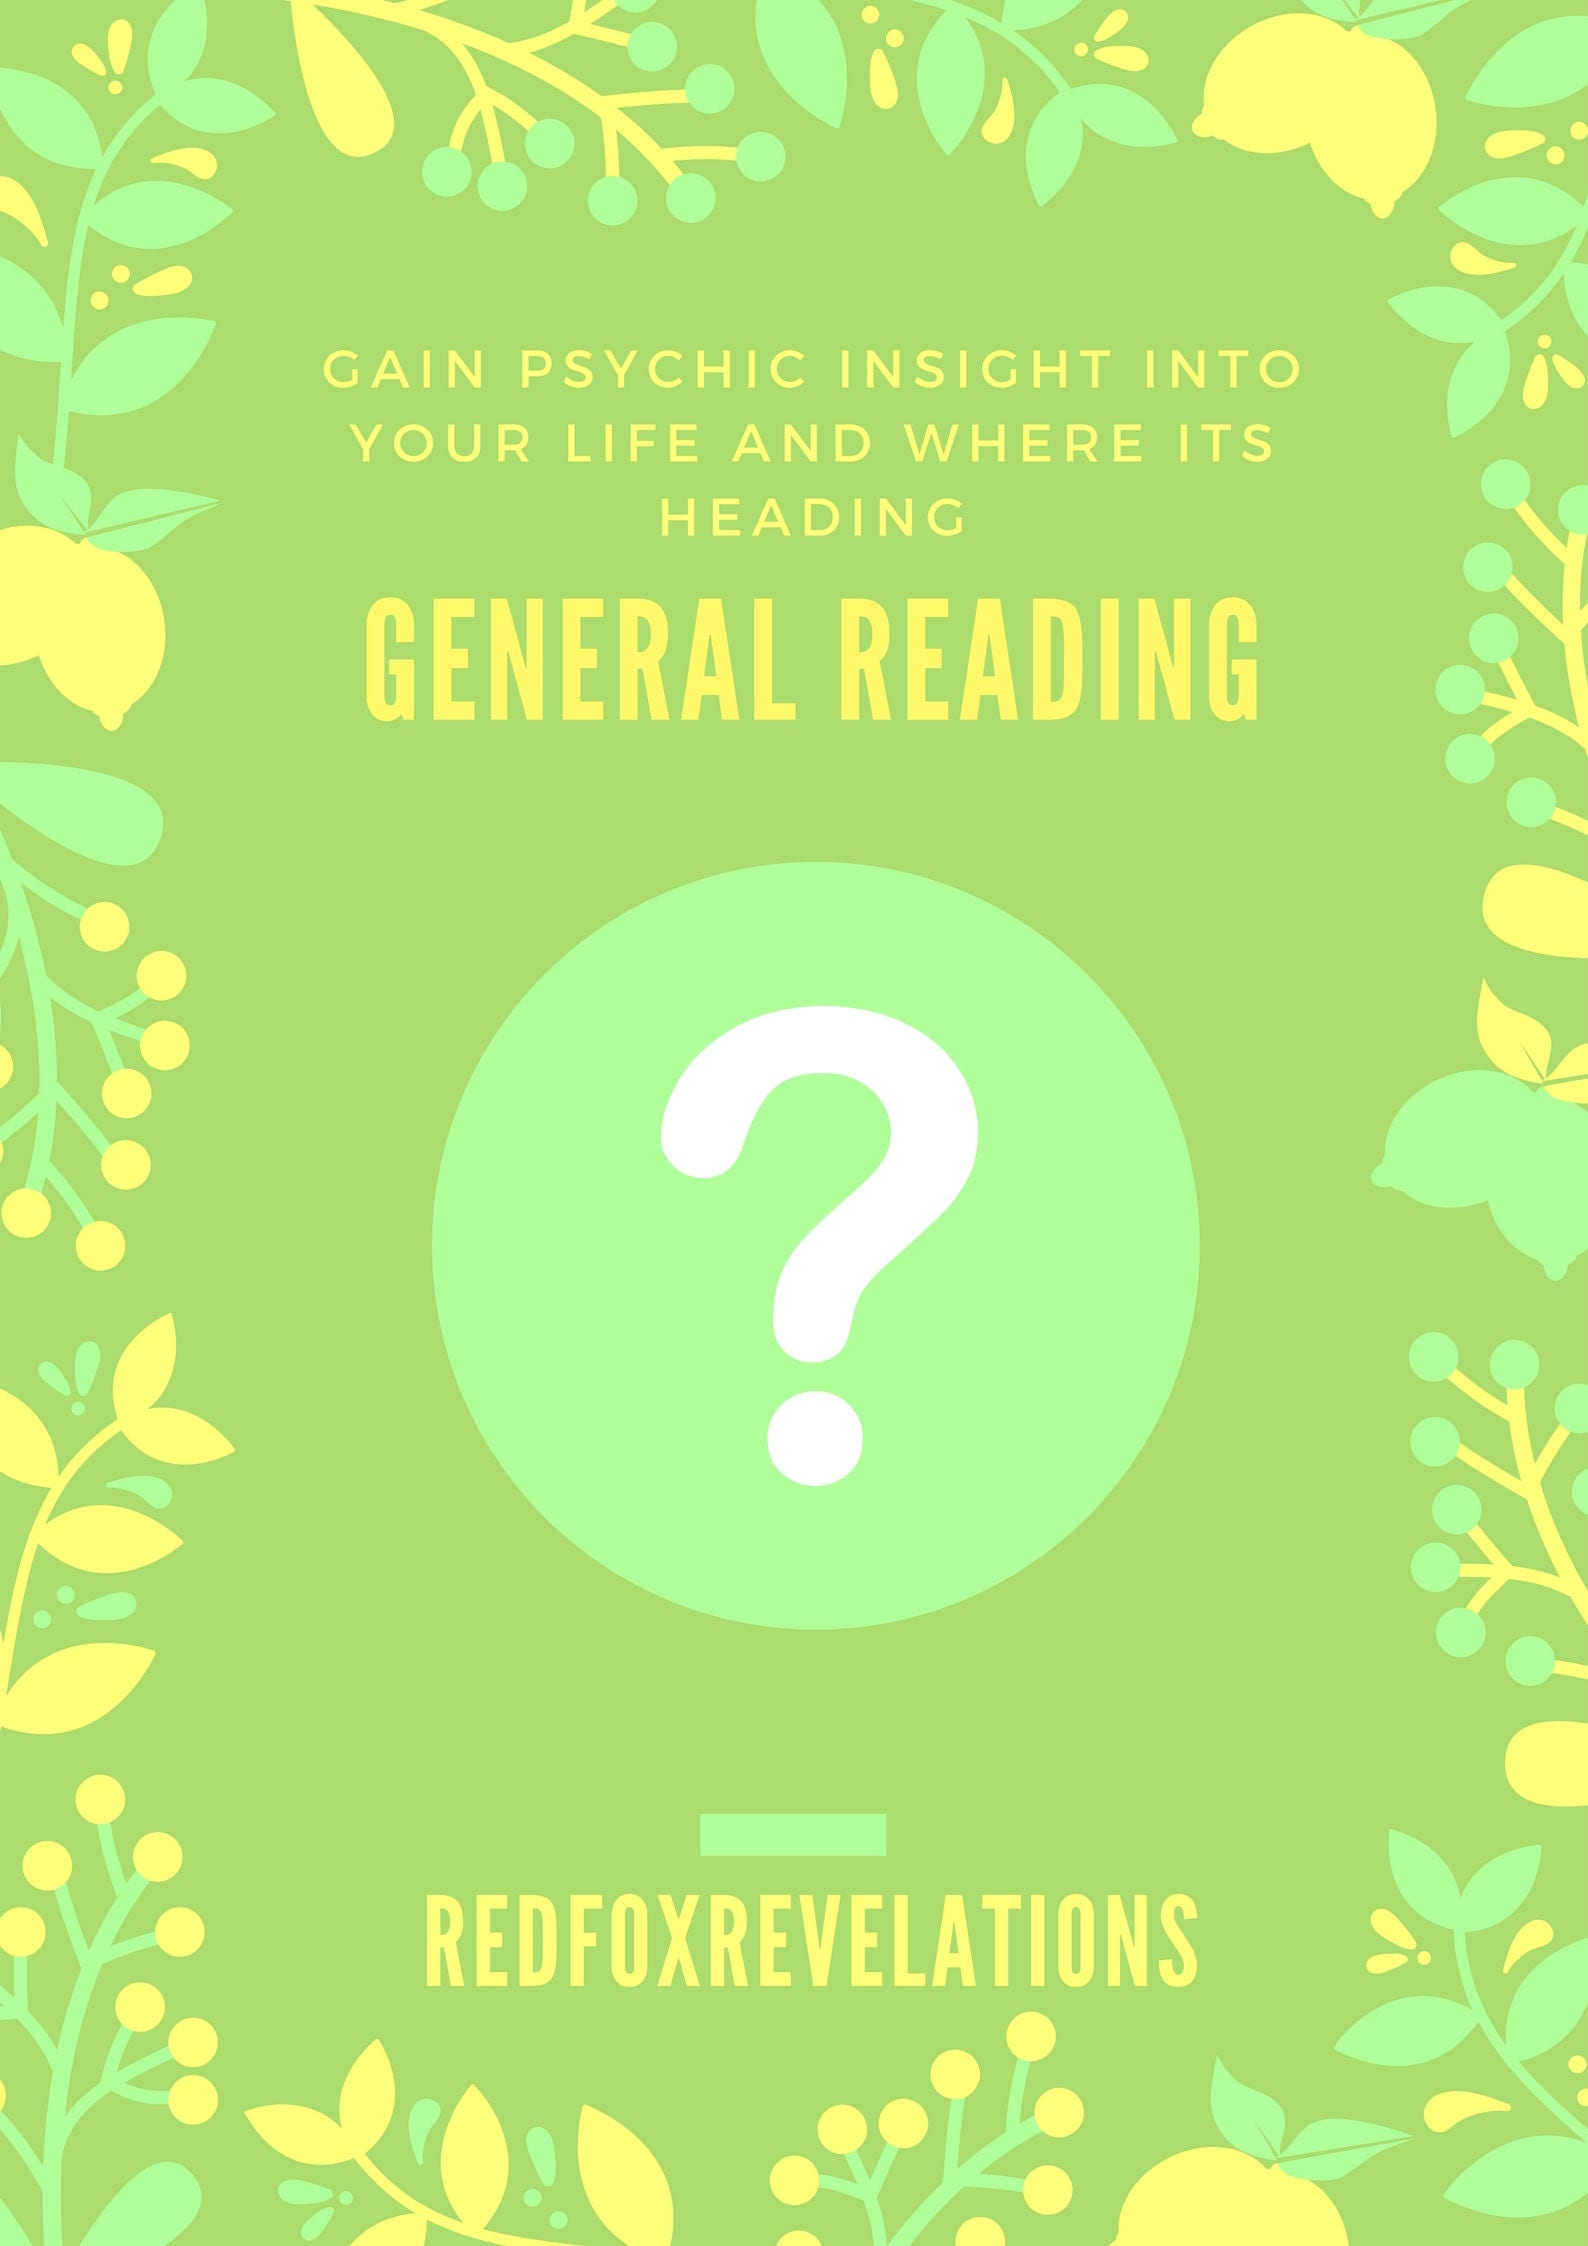 Psychic Reading Meaning: General Psychic Reading